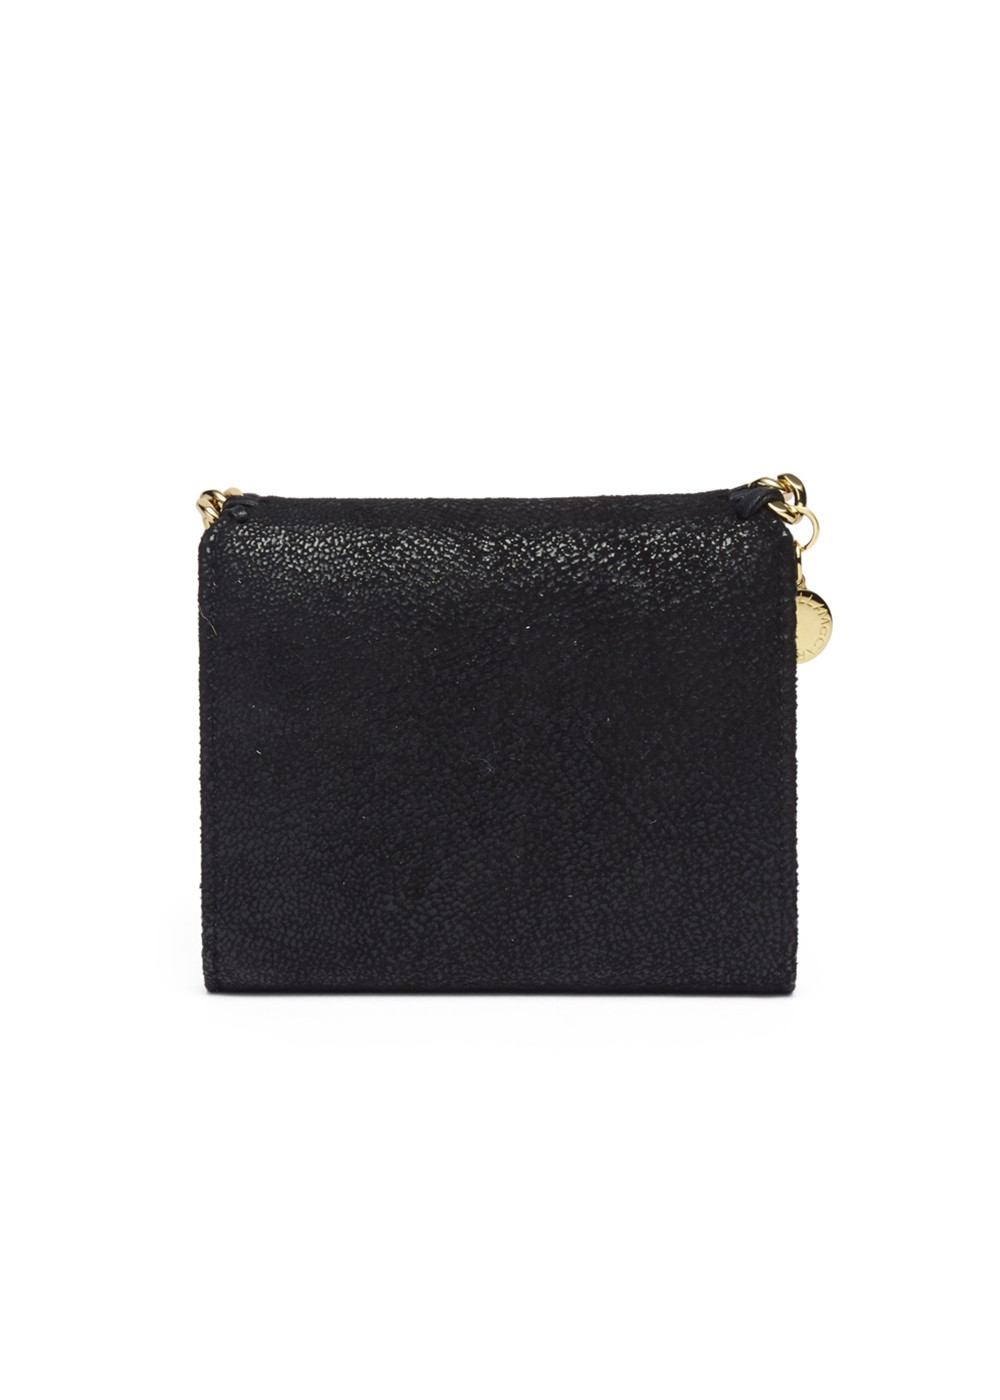 【最大35%OFF】SMALL FLAP WALLET / 【NERO】|NERO|レディース財布|Stella McCartney